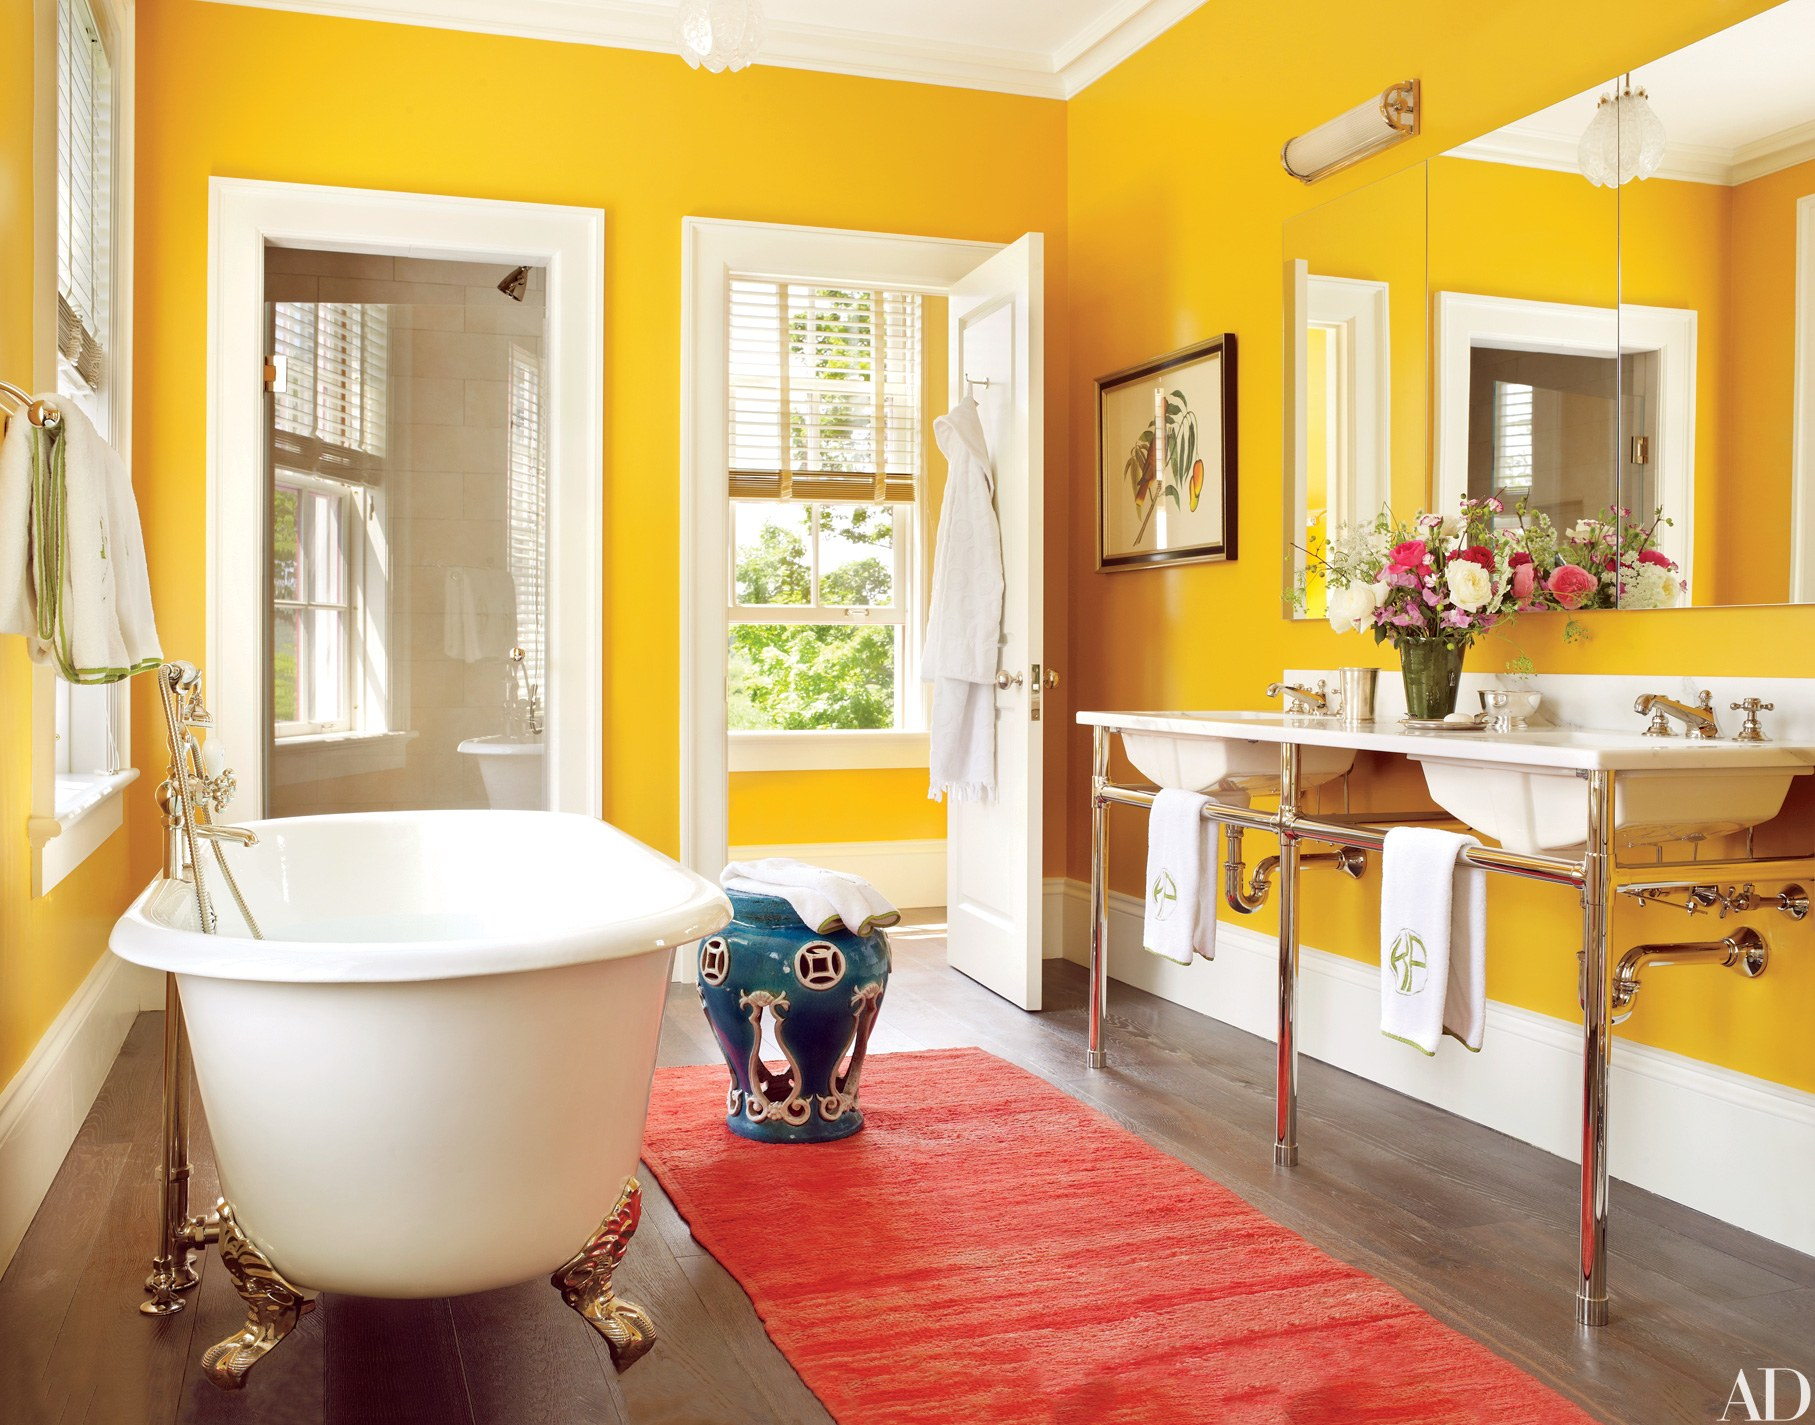 Beautiful 20 Colorful Bathroom Design Ideas That Will Inspire You To Go Bold intended for New Bathroom Ideas Colors